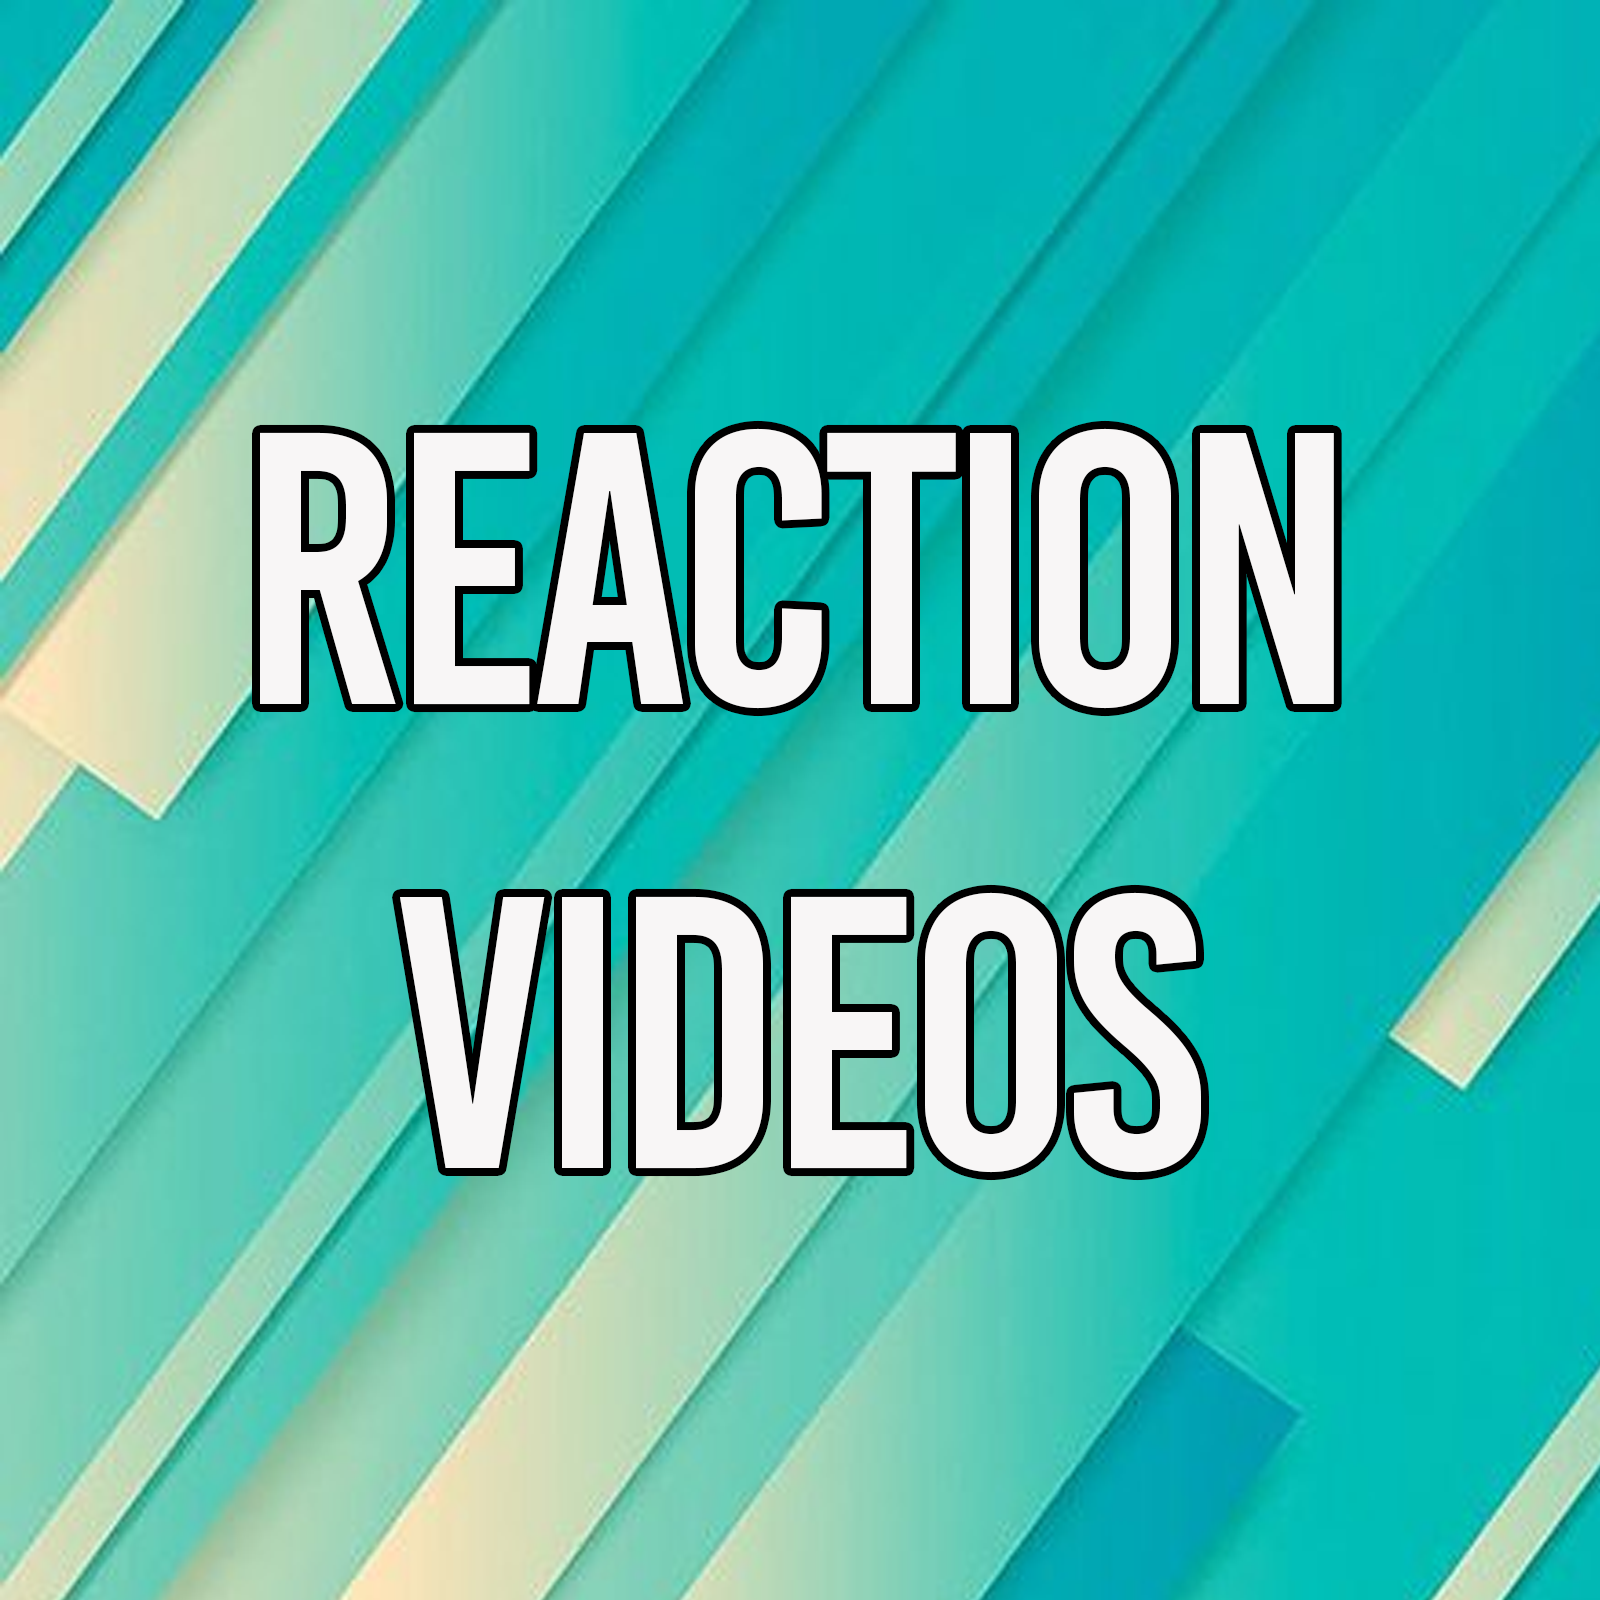 Reaction Videos.png